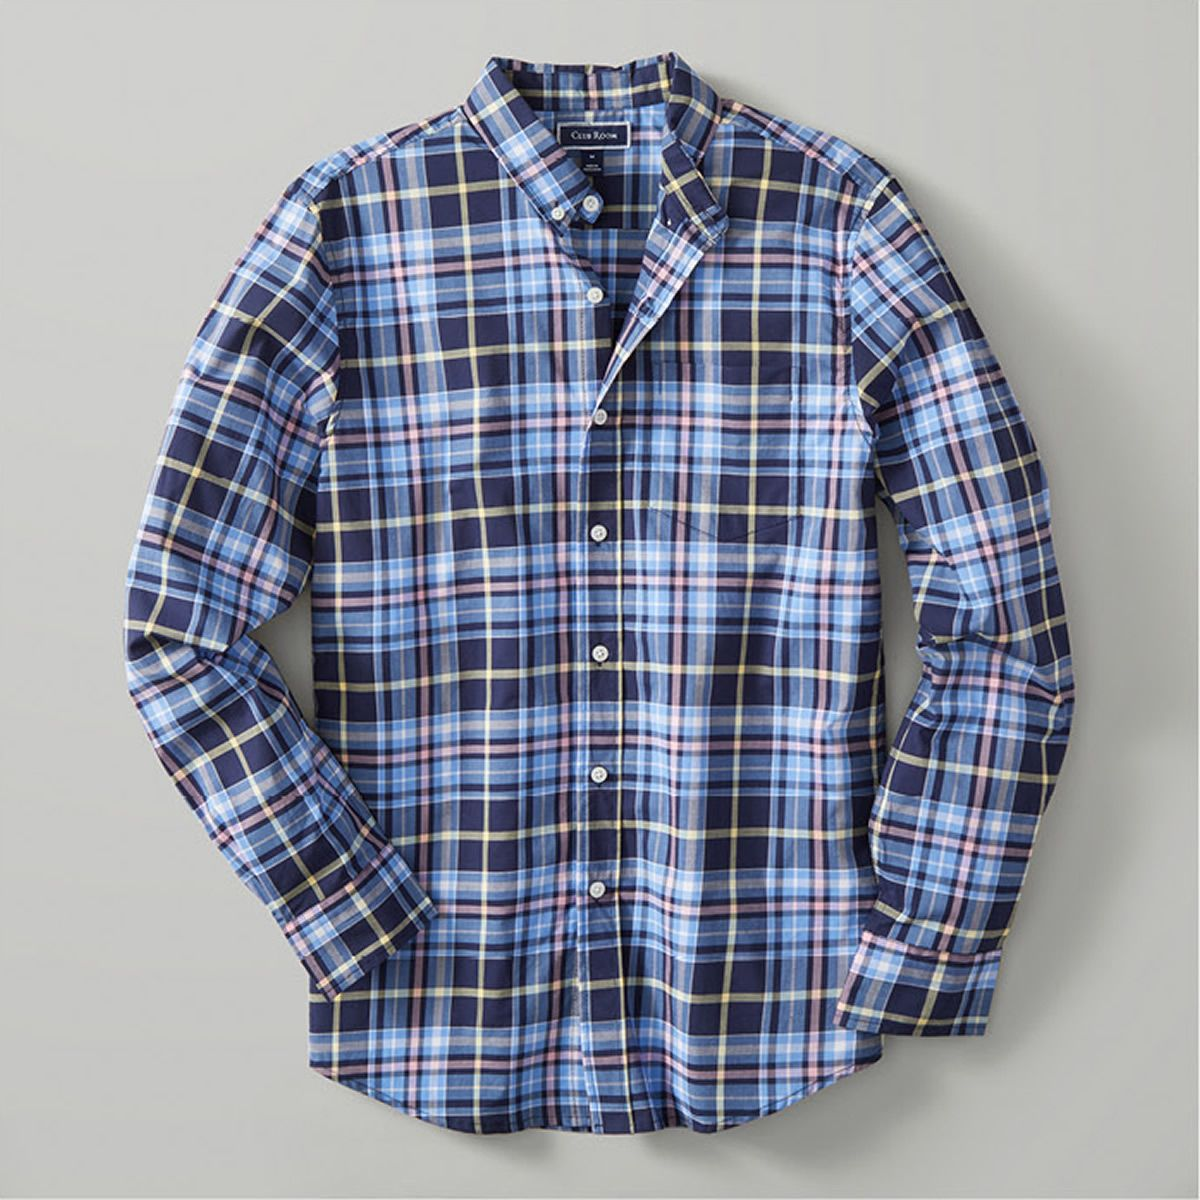 2bb5d1d7f12b Men s Shirts - Macy s